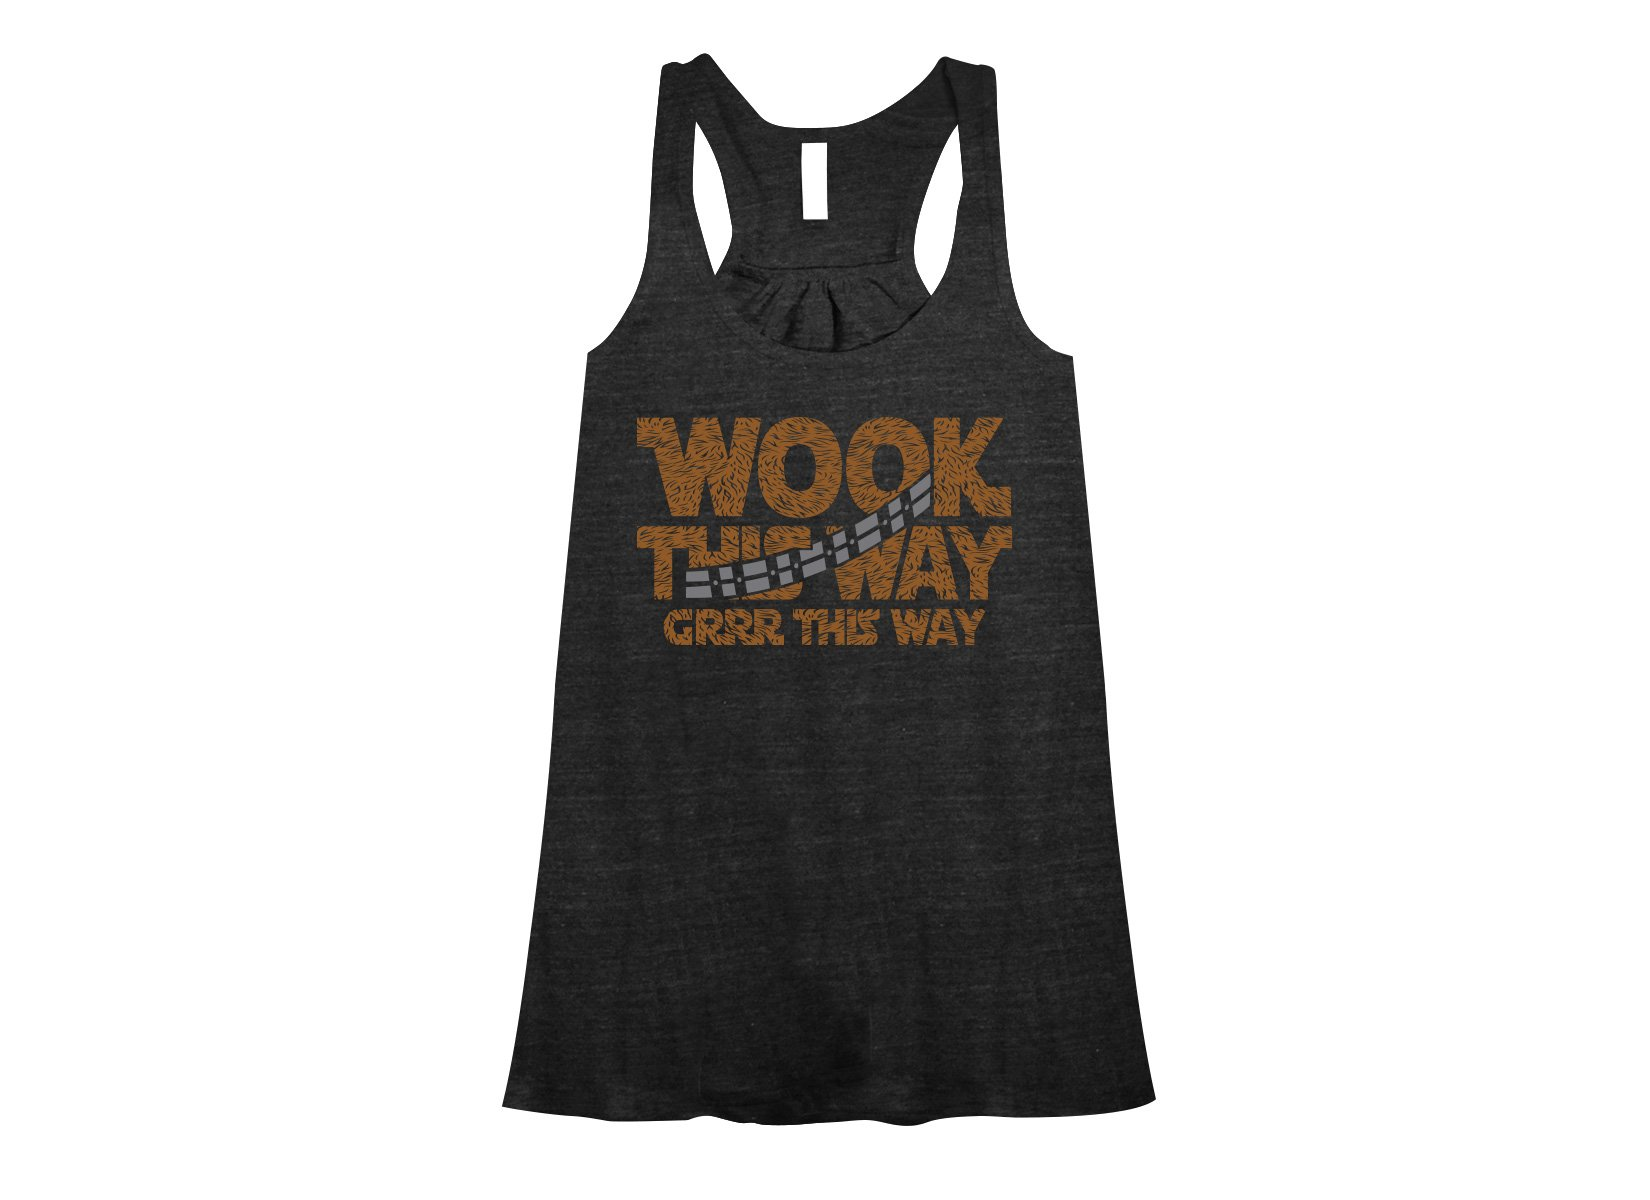 Wook This Way on Womens Tanks T-Shirt